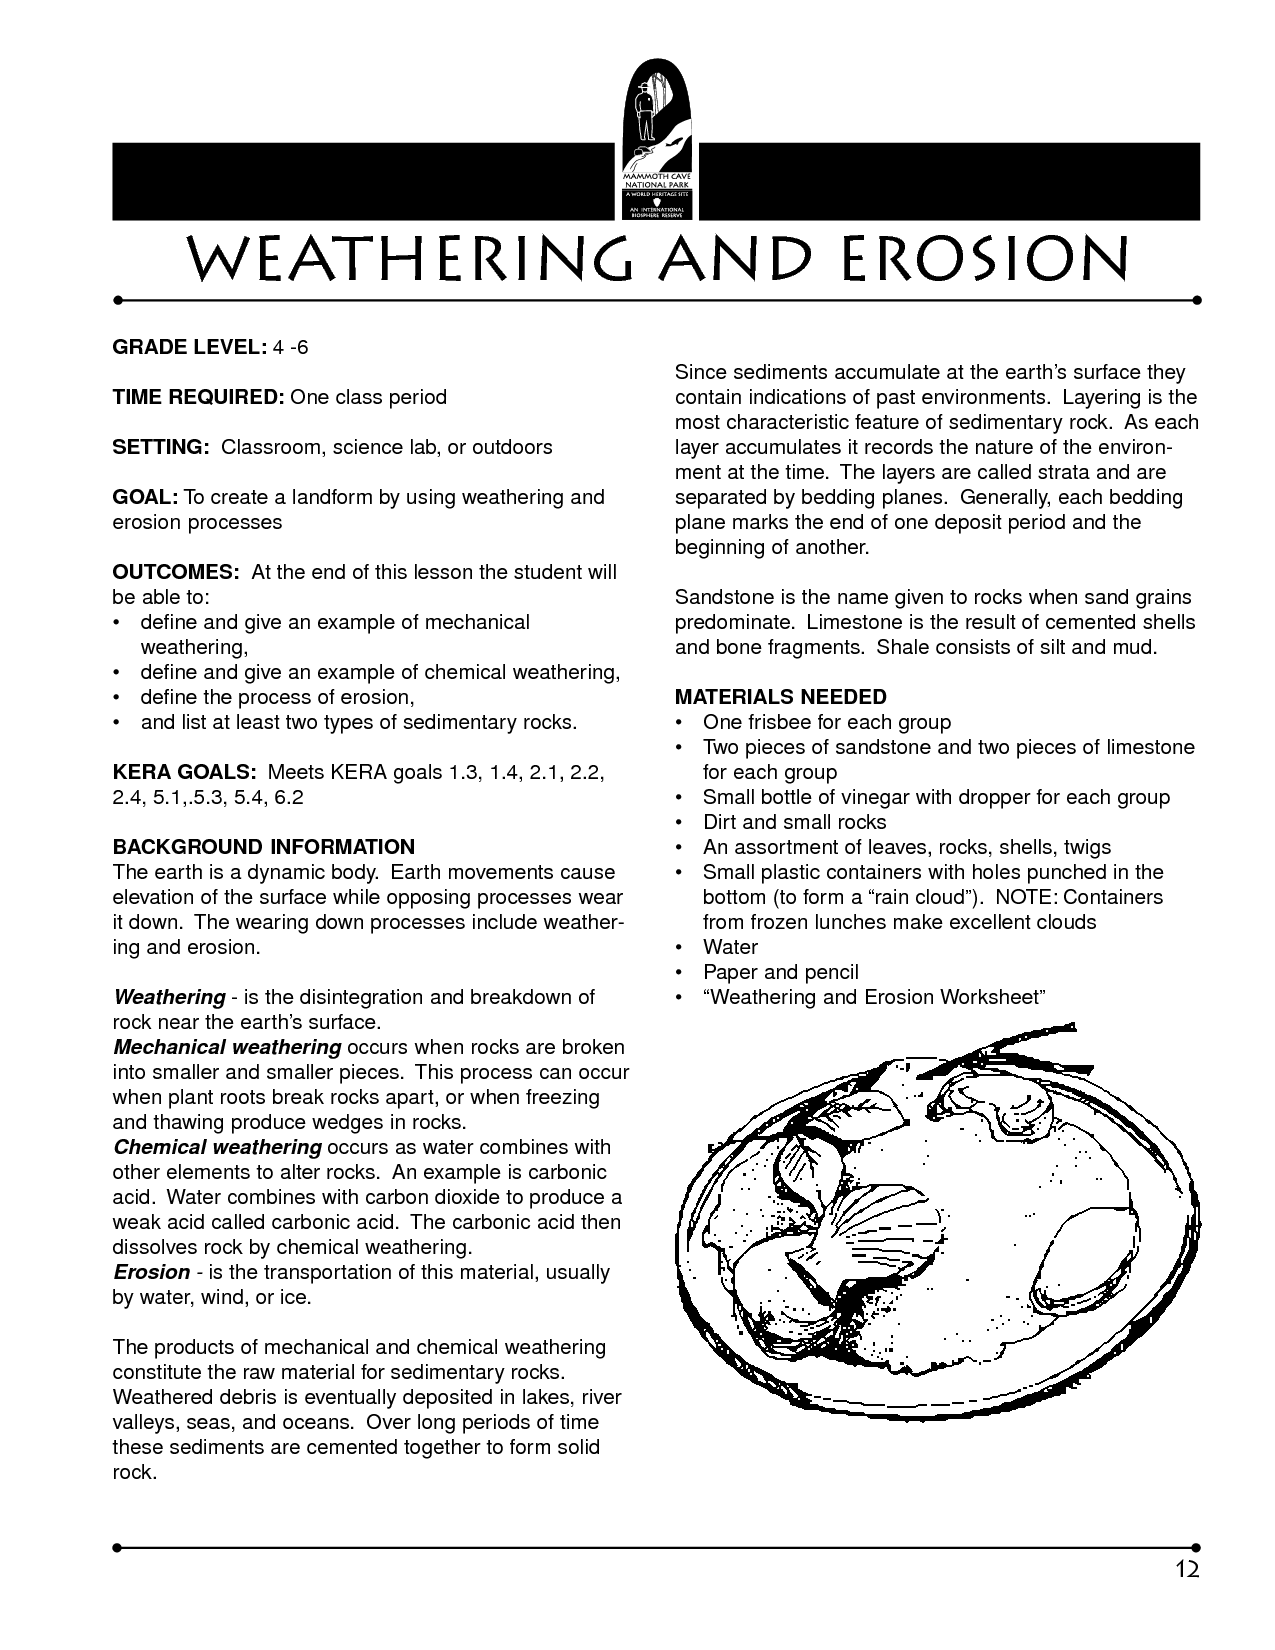 9 Best Images Of Weathering And Erosion Worksheets 4th